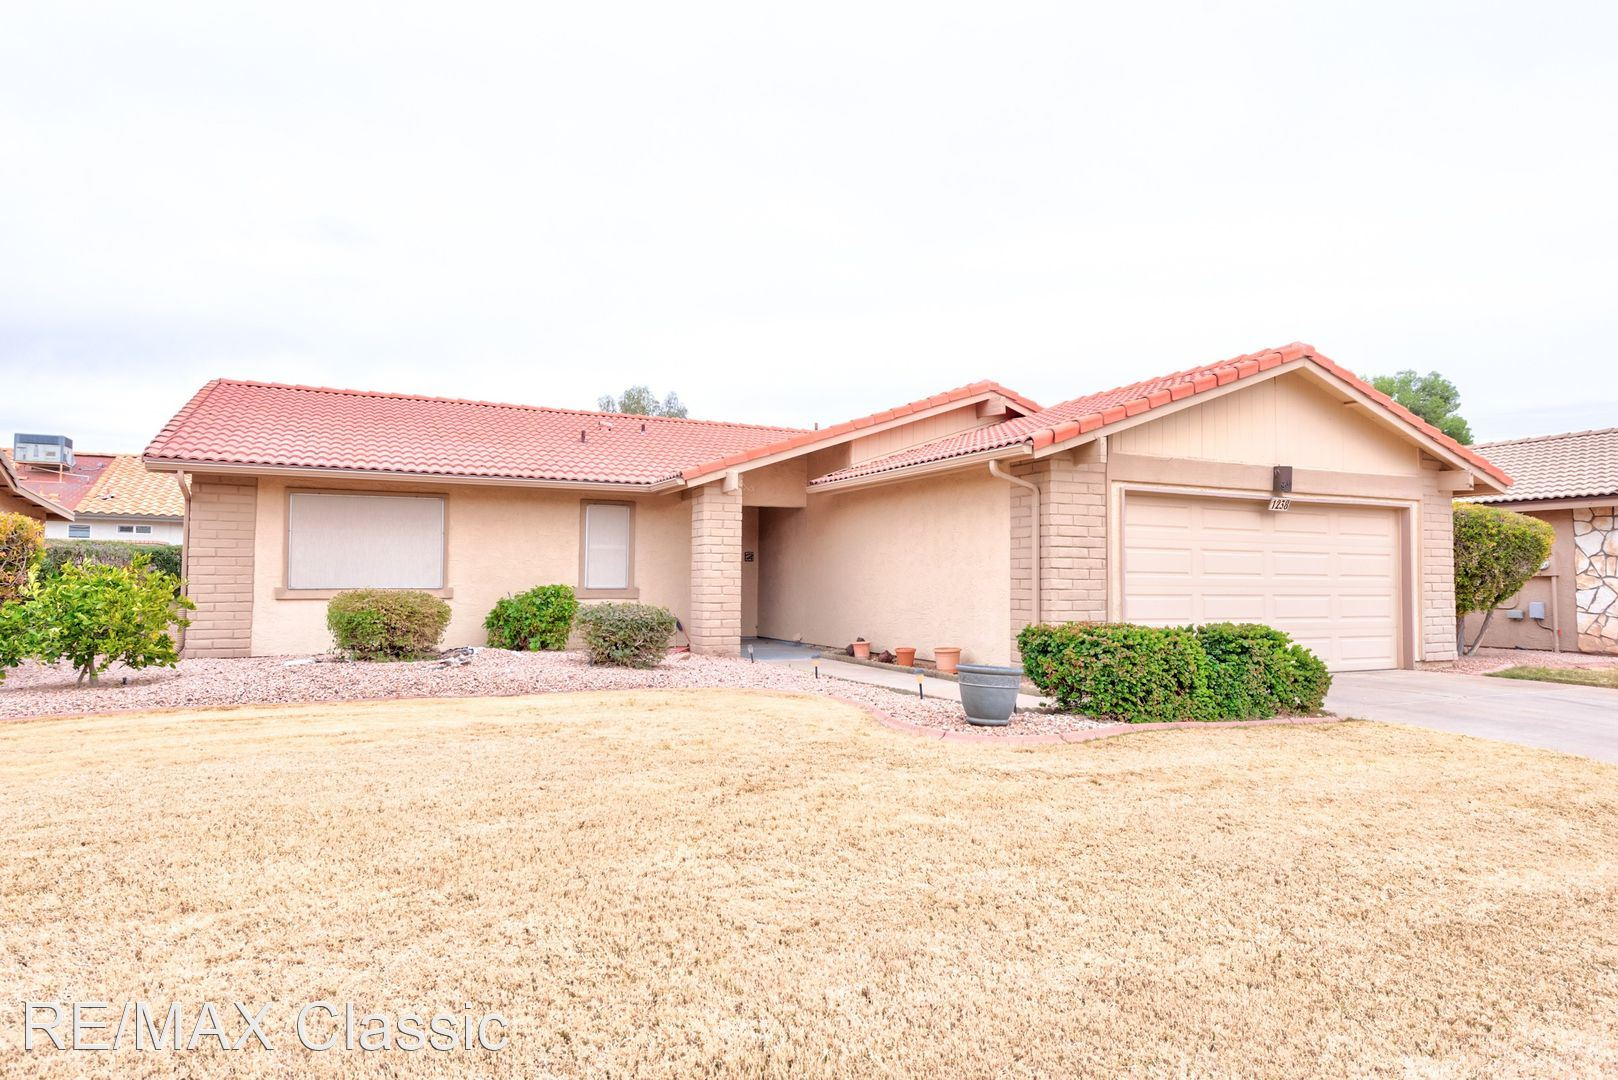 1238 Leisure World, Mesa, AZ - $2,500